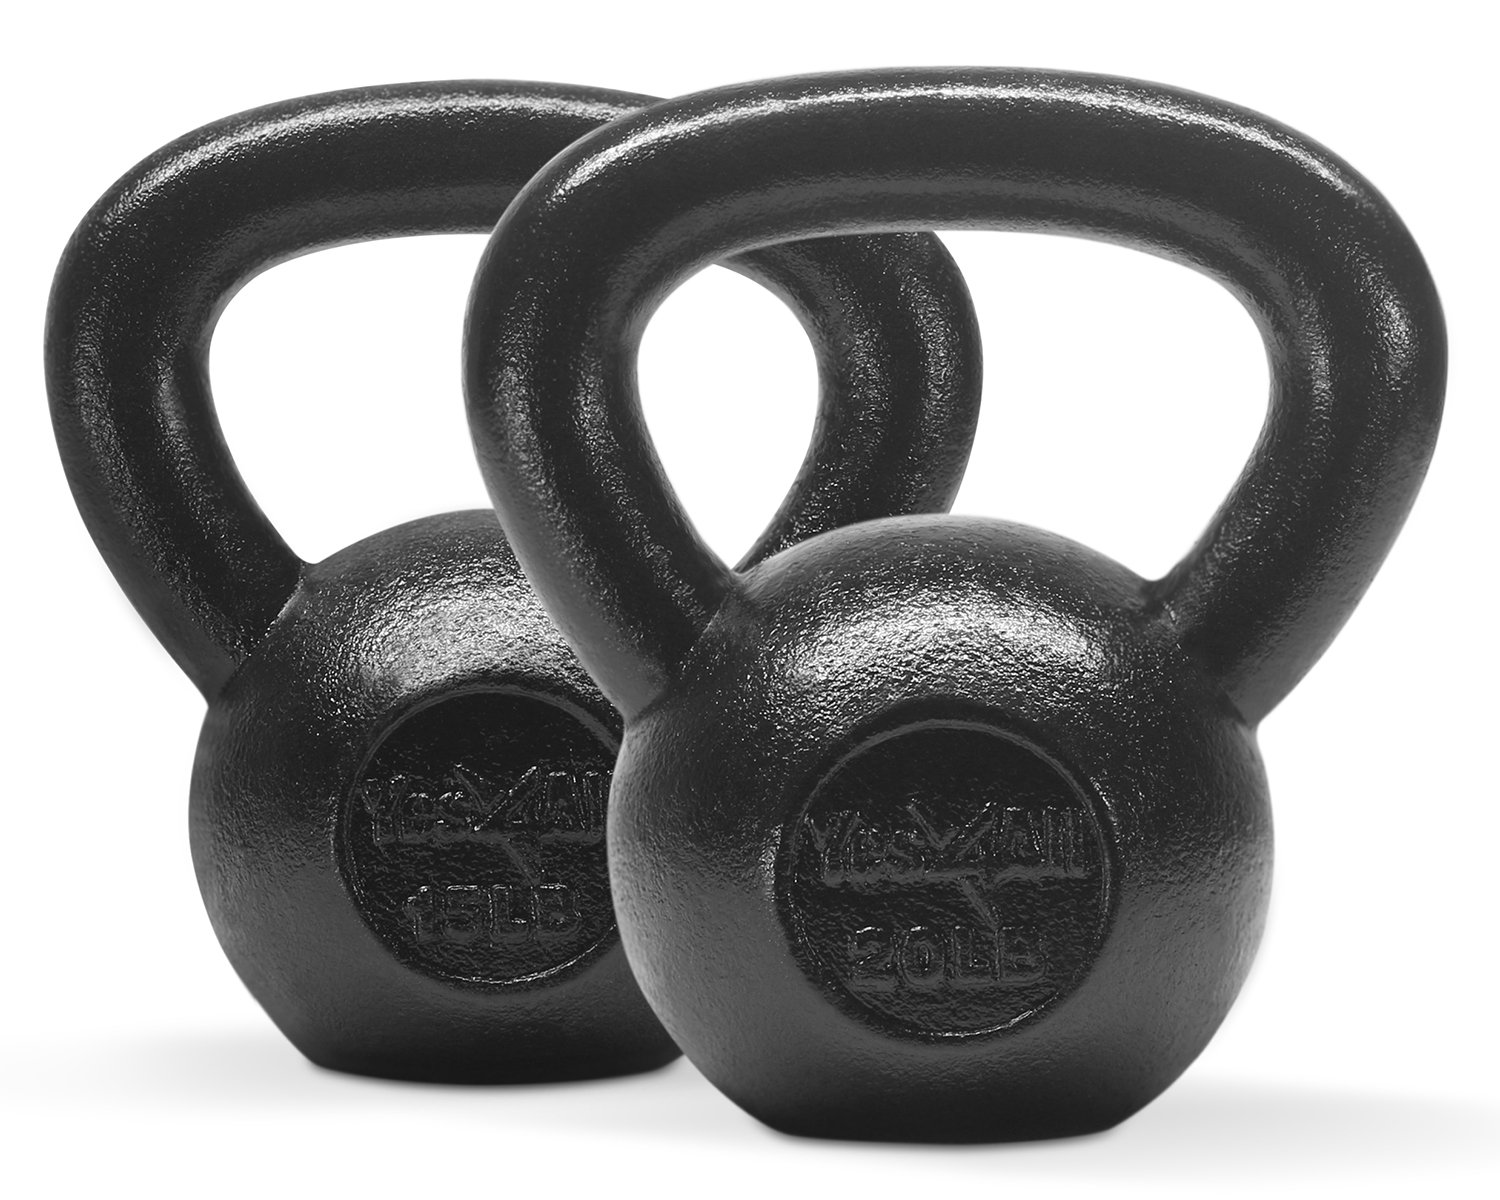 Yes4All Combo Cast Iron Kettlebell Weight Sets – Great for Full Body Workout and Strength Training – Kettlebells 15 20 lbs (Black)